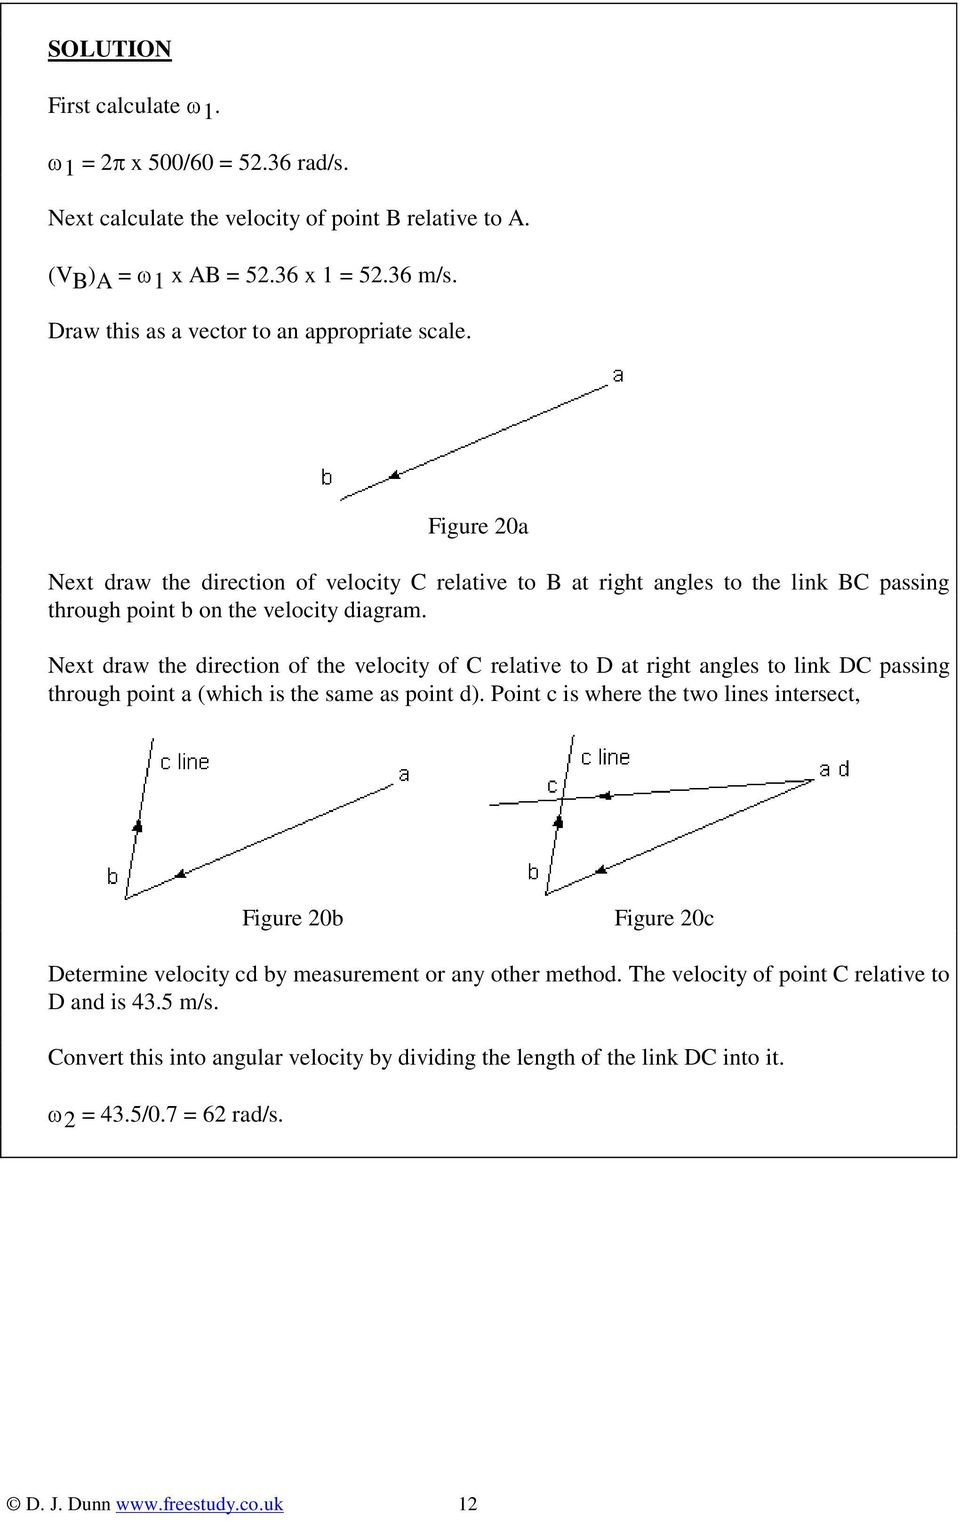 Next draw the direction of the velocity of C relative to D at right angles to link DC passing through point a (which is the same as point d).